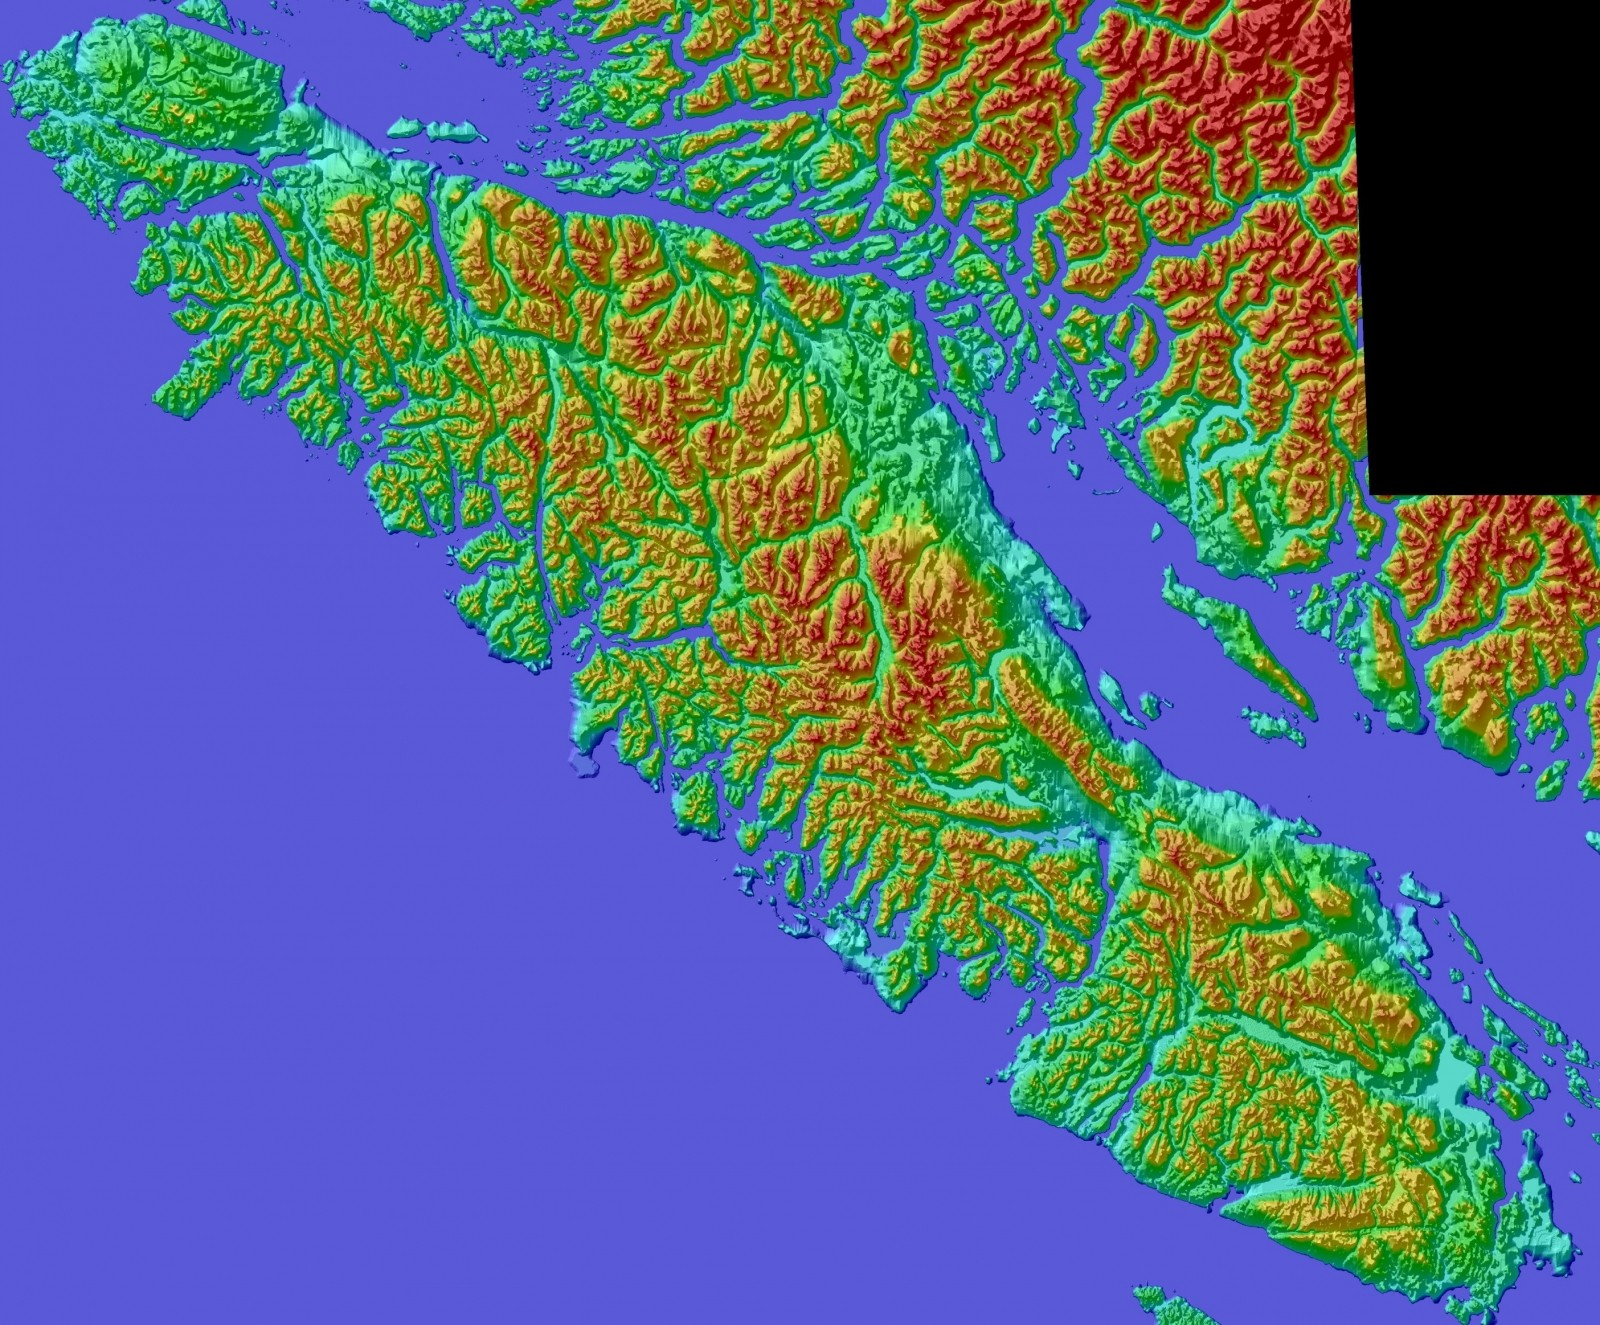 Color Shaded Relief Model of Vancouver Island, British Columbia